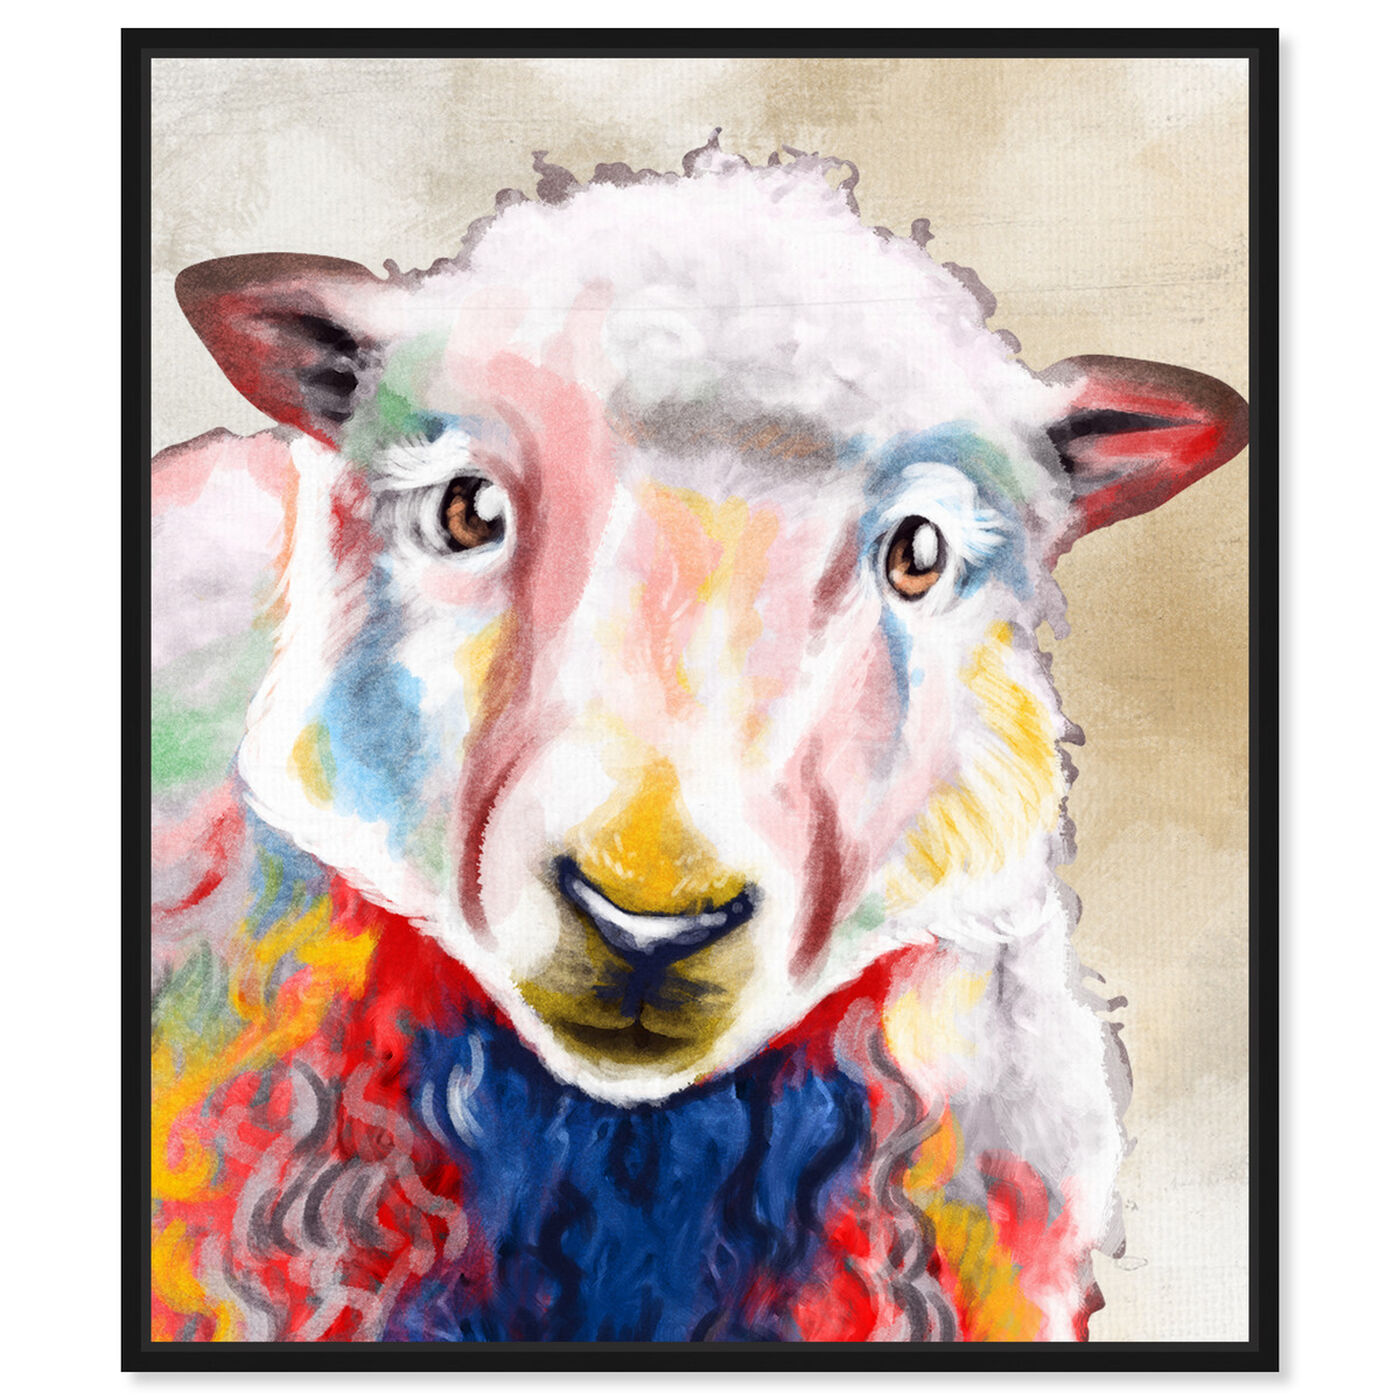 Front view of Color Splash Sheep featuring animals and farm animals art.